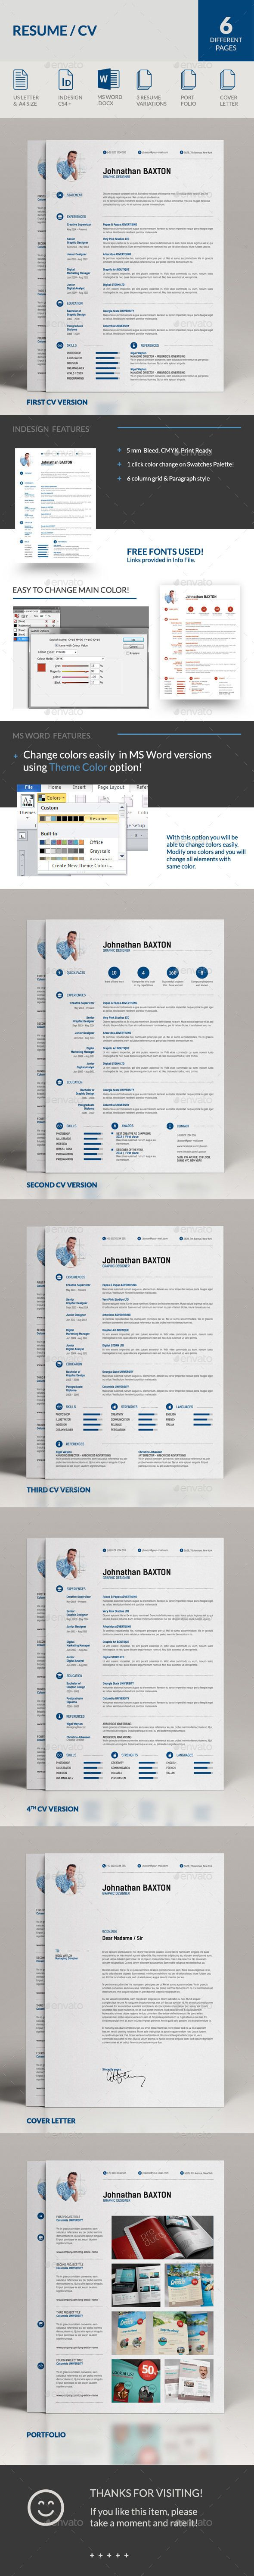 Resume template indesign indd download here httpgraphicriver resume template indesign indd download here httpgraphicriveritemresume15114328refksioks yelopaper Images